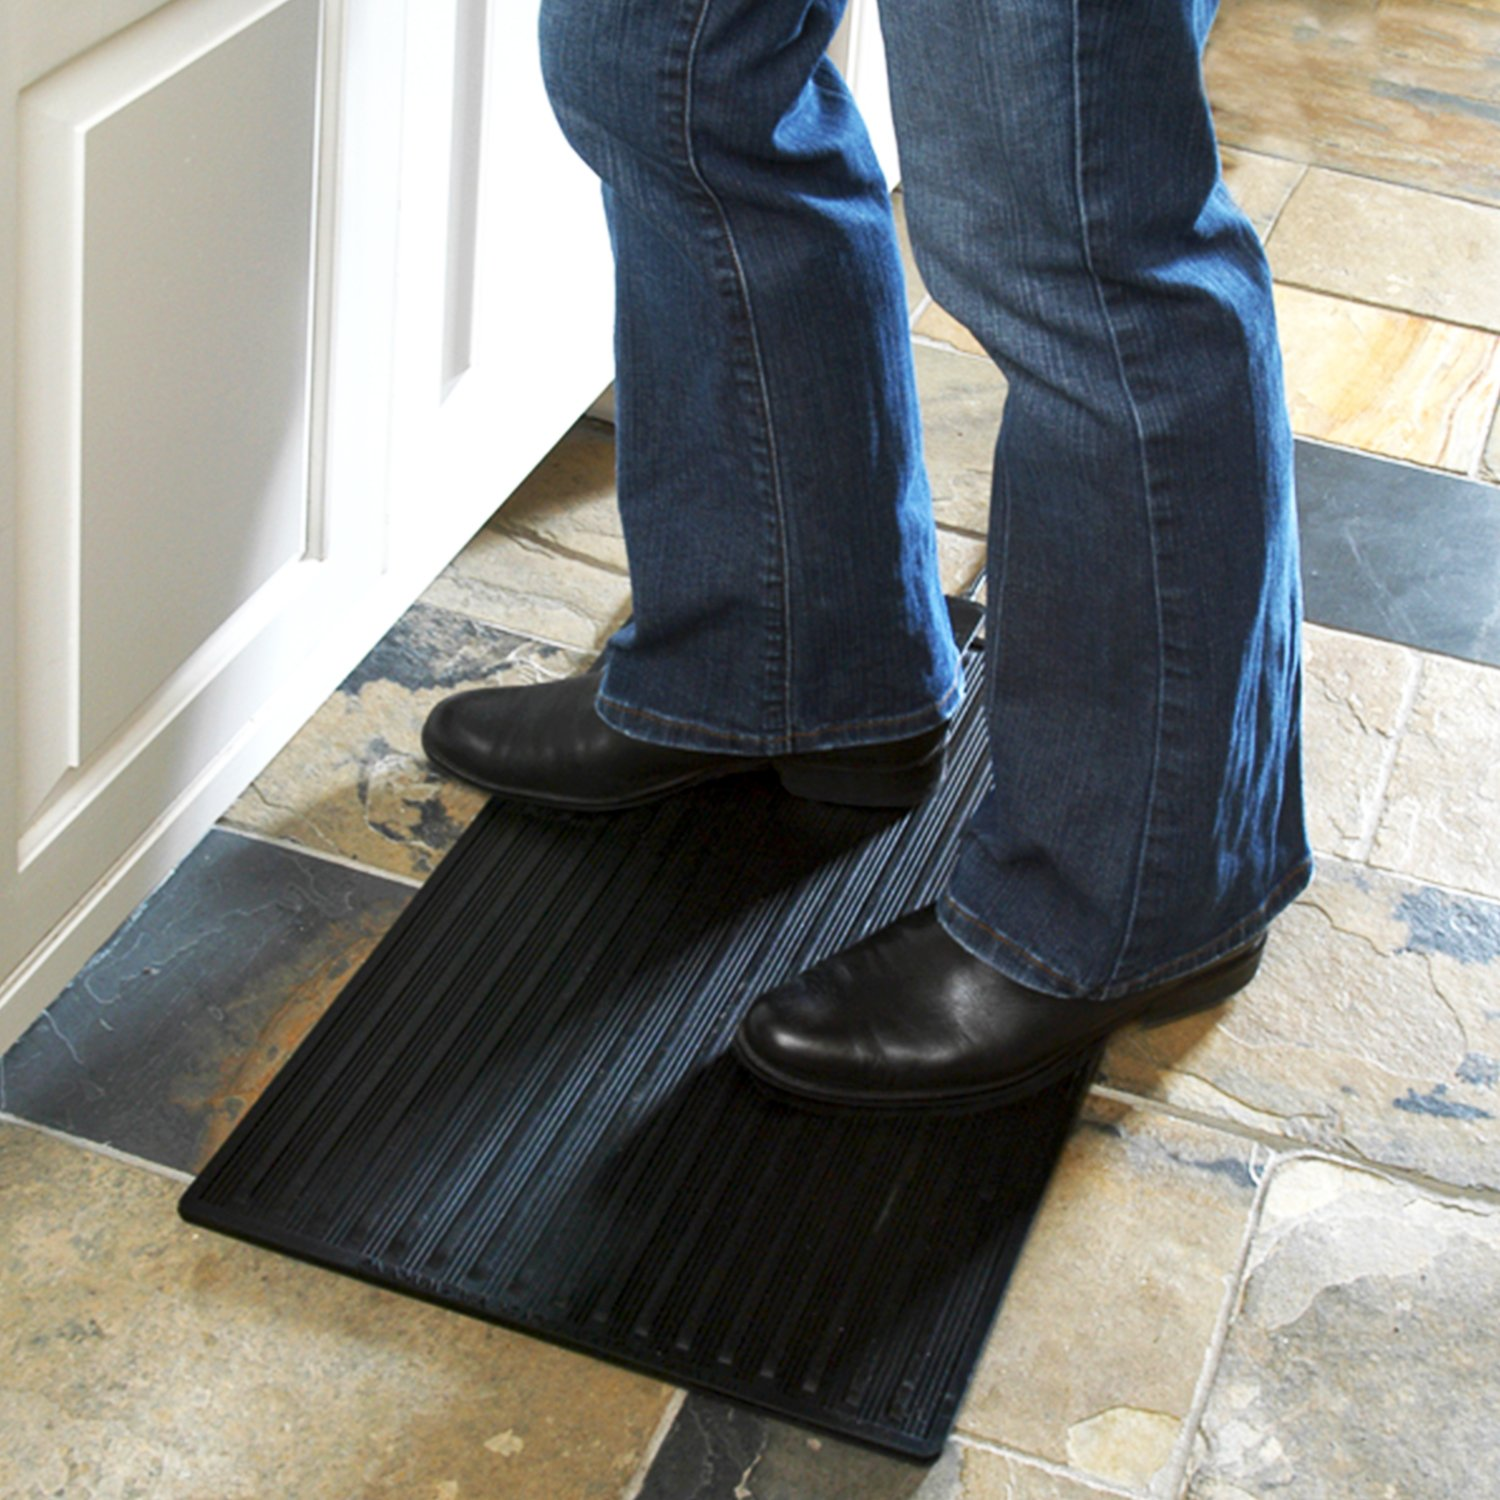 of heated heating systems for mats beautiful in can driveways floor floors radiant install mat vs you cost built over